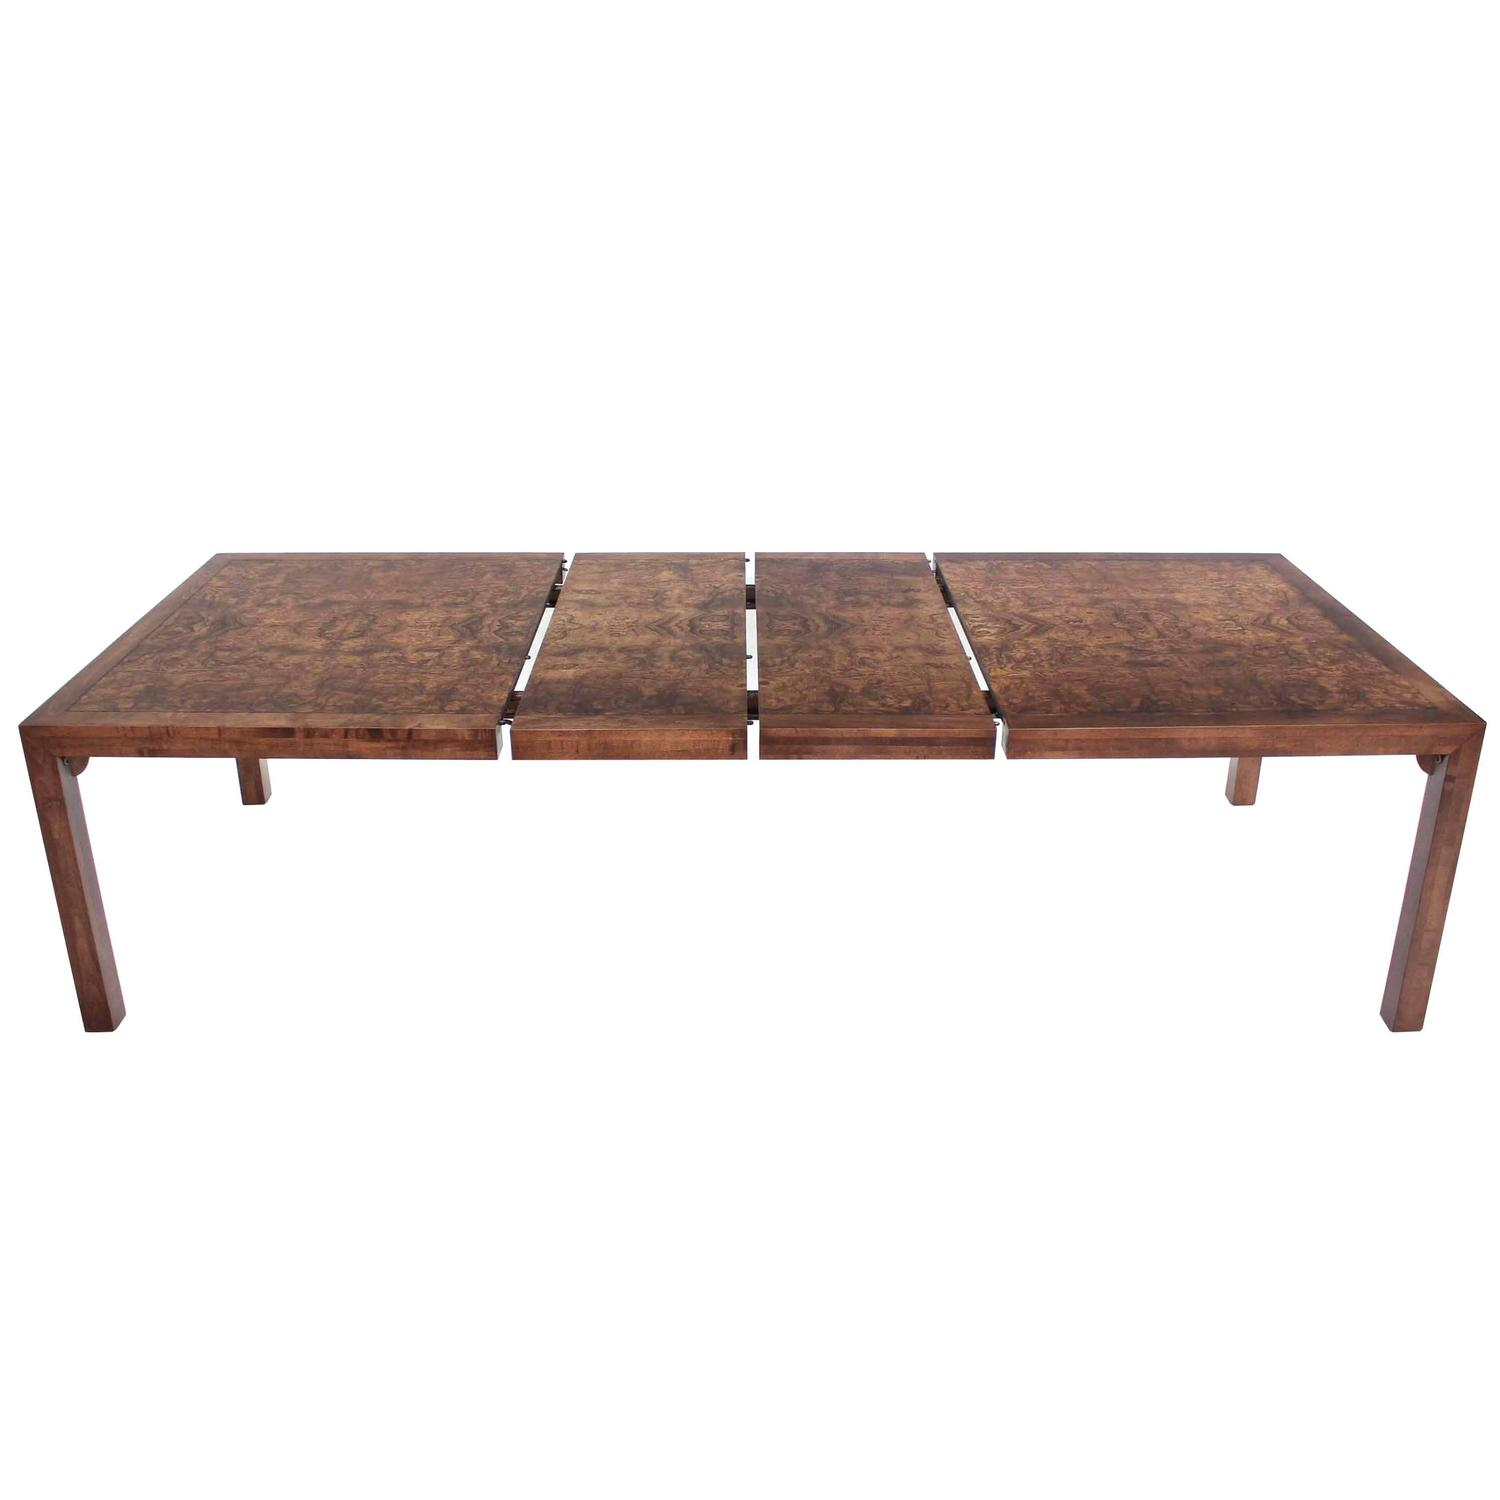 Burl Walnut Mid Century Modern Dining Table With Two Leaves At 1stdibs